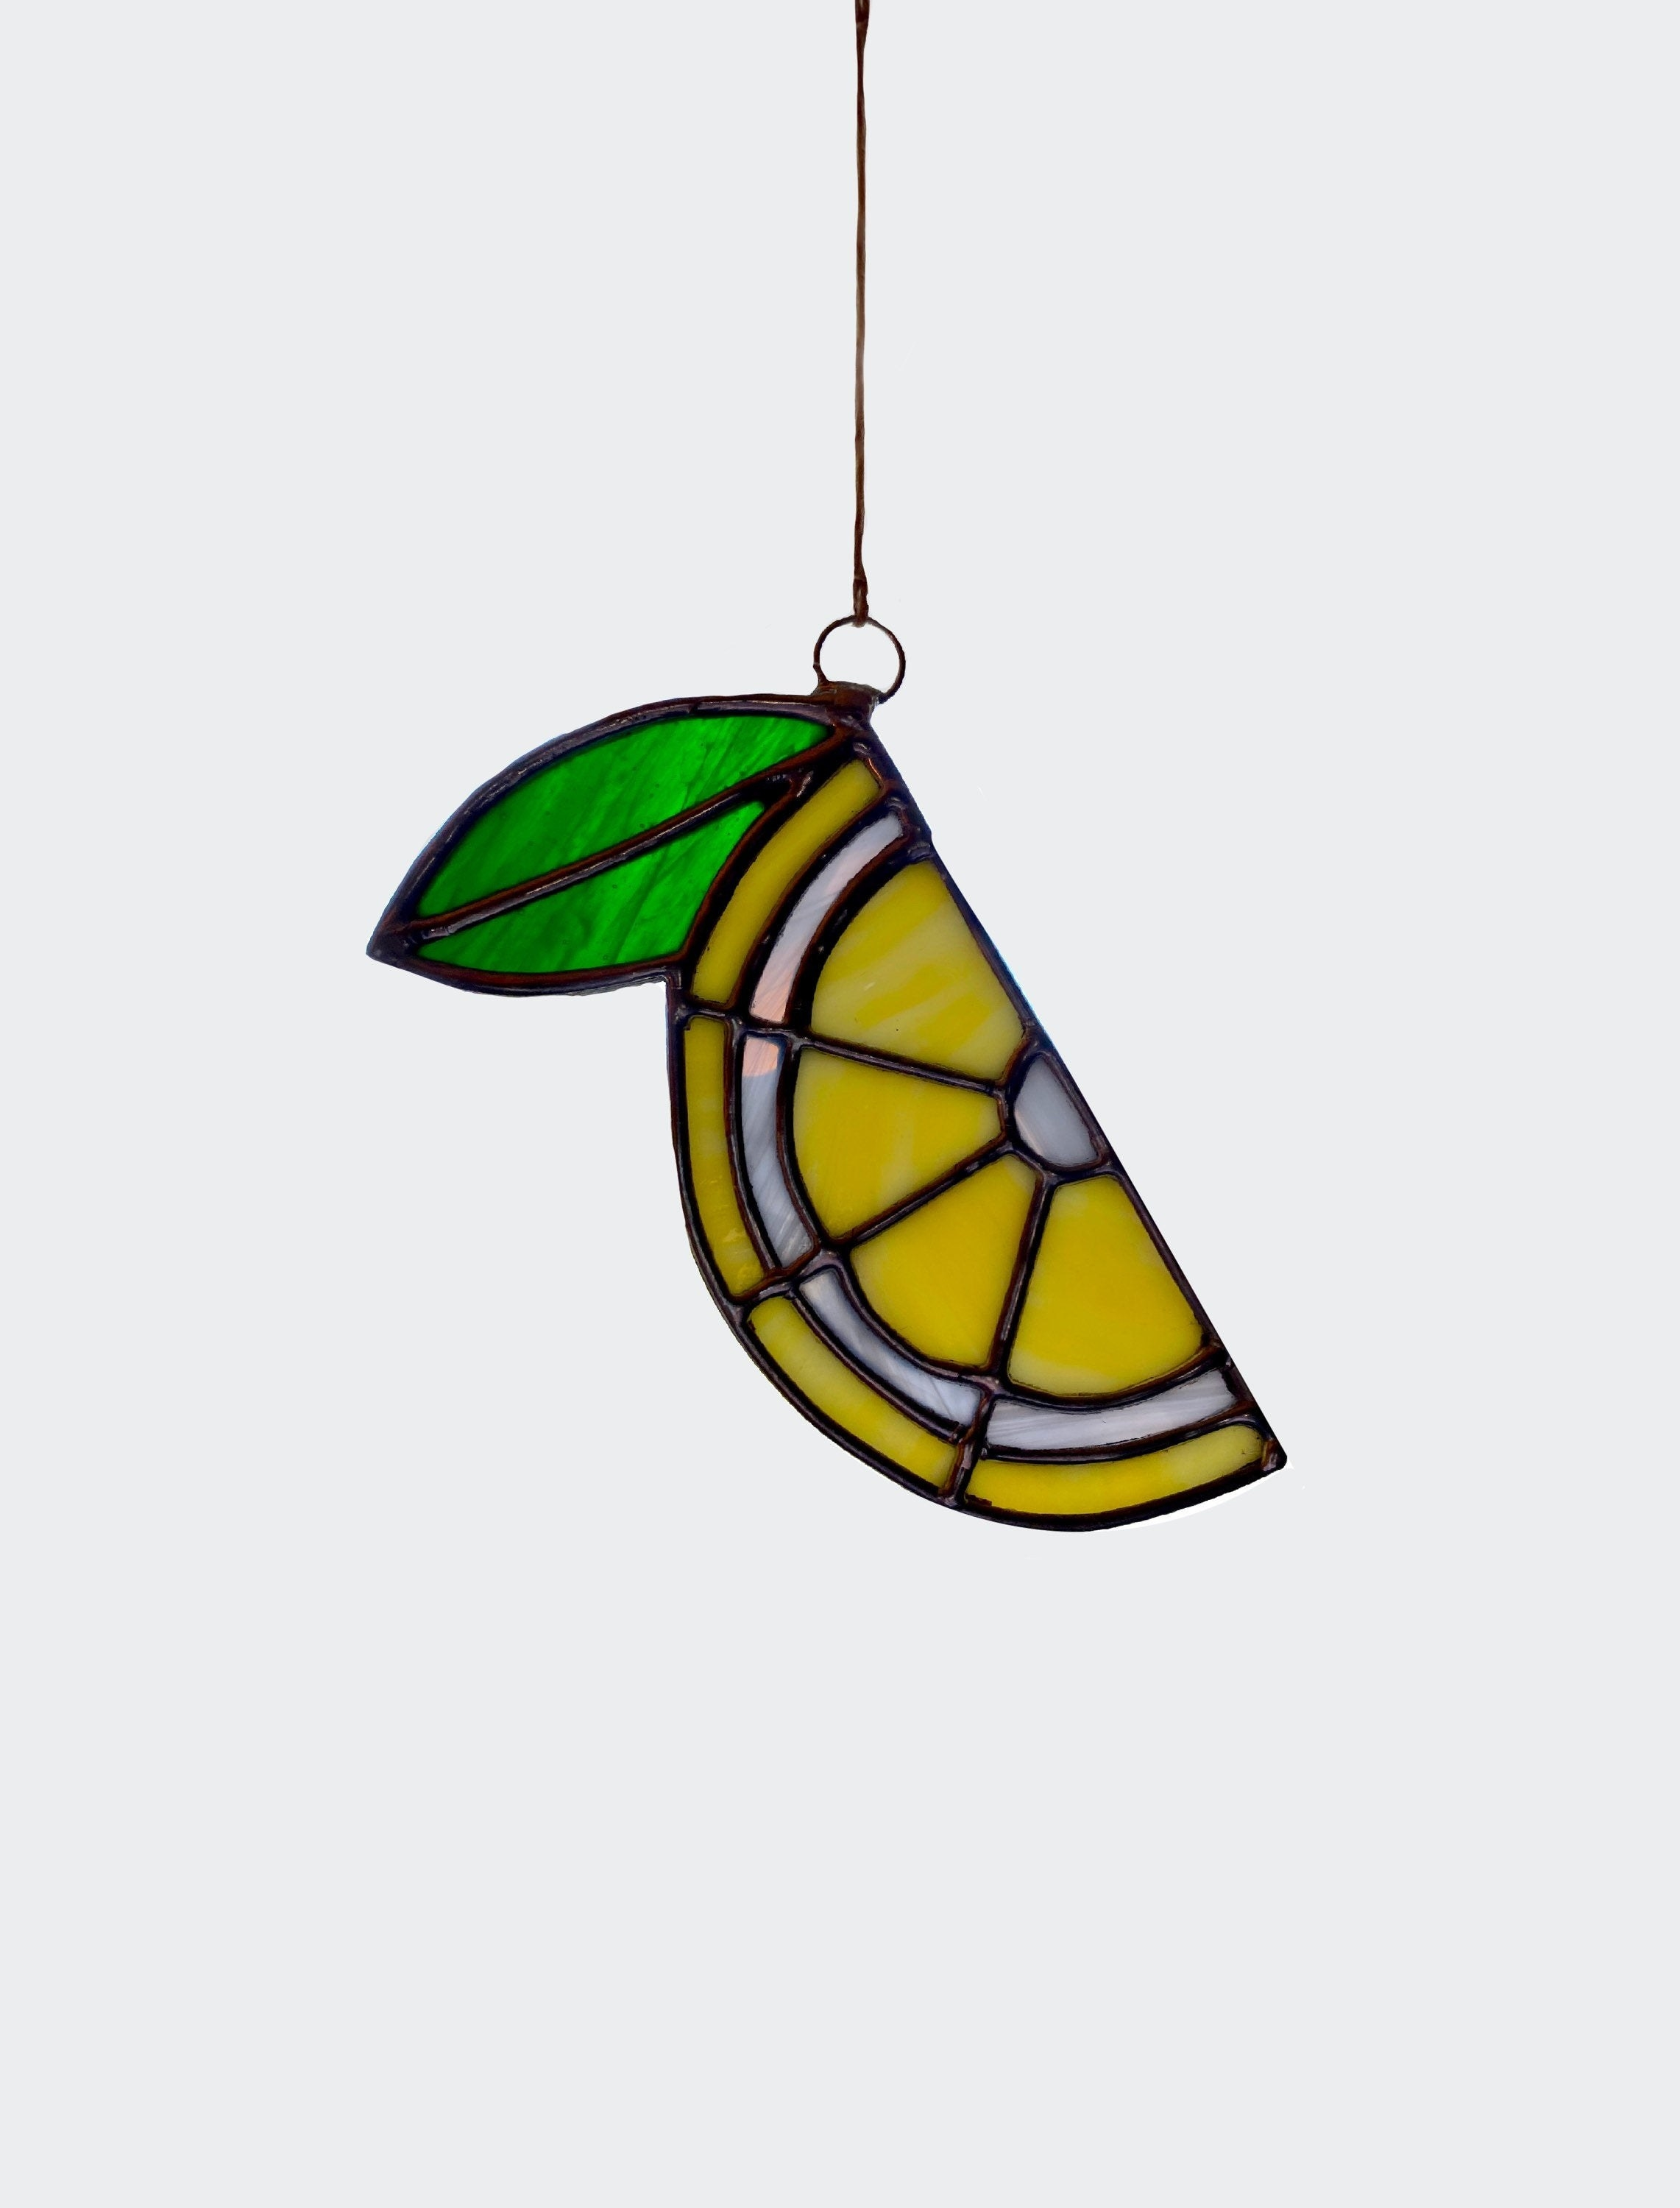 Lemon stained glass sun catcher against grey backdrop